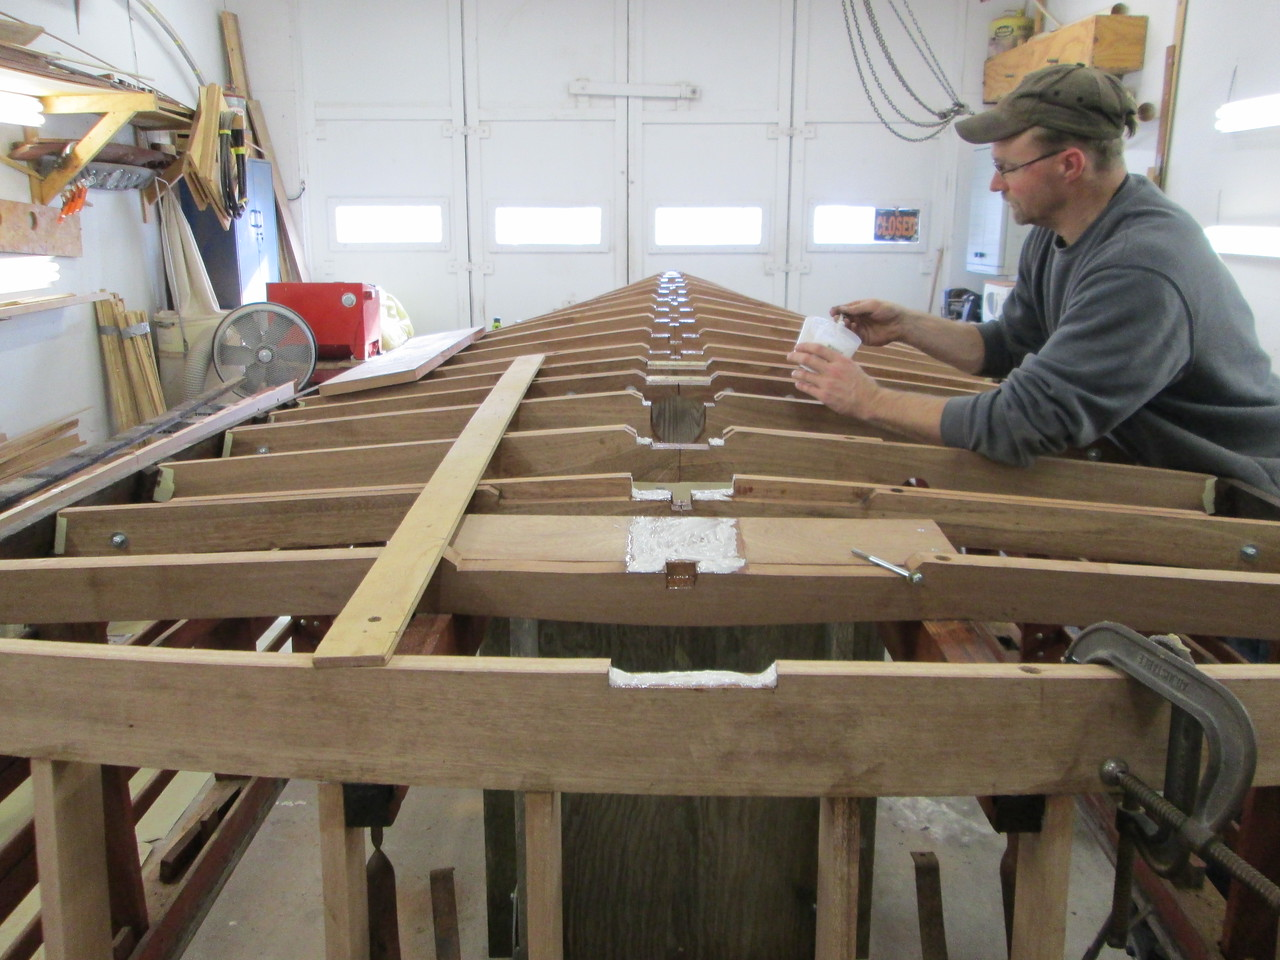 Epoxying the new keel in place.